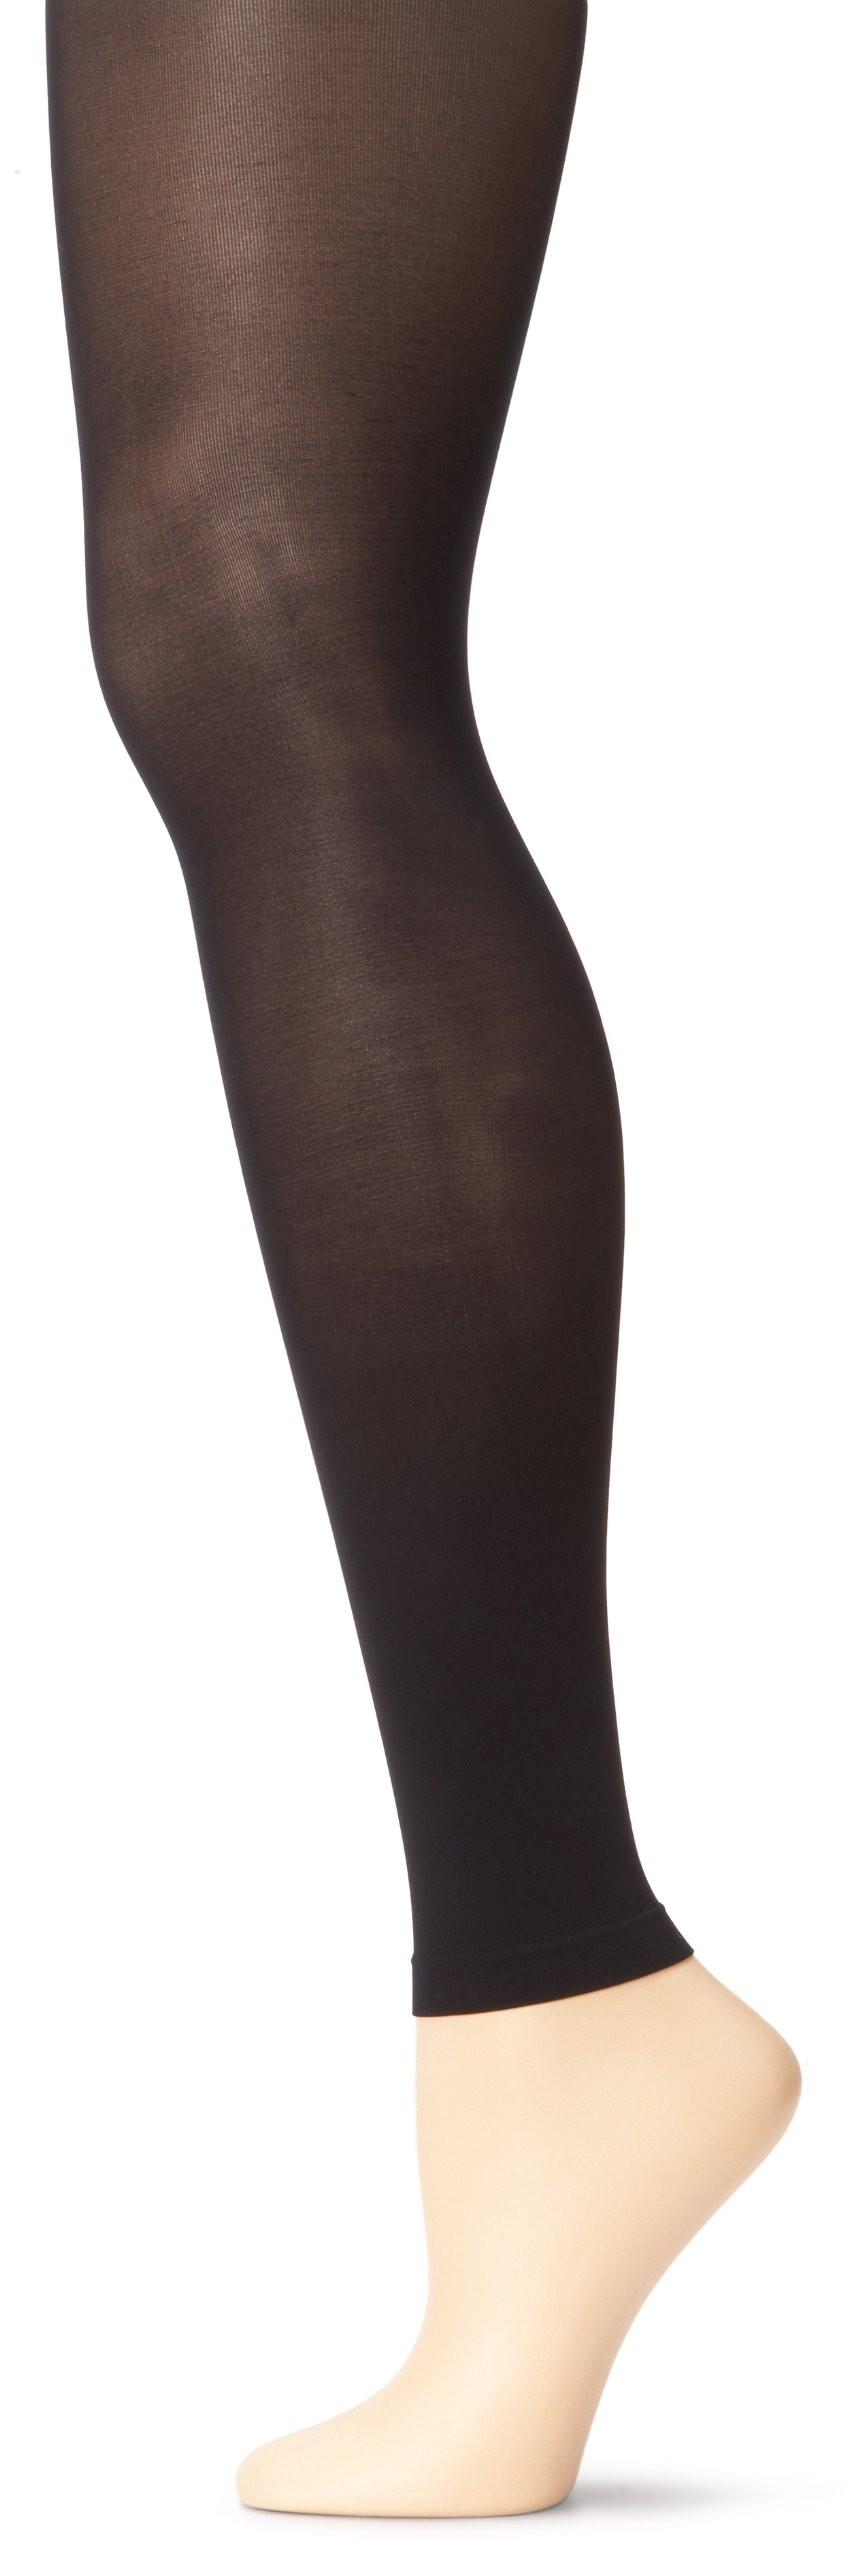 Capezio Women's Ultra Soft Footless Tight,Black,Large/X-Large